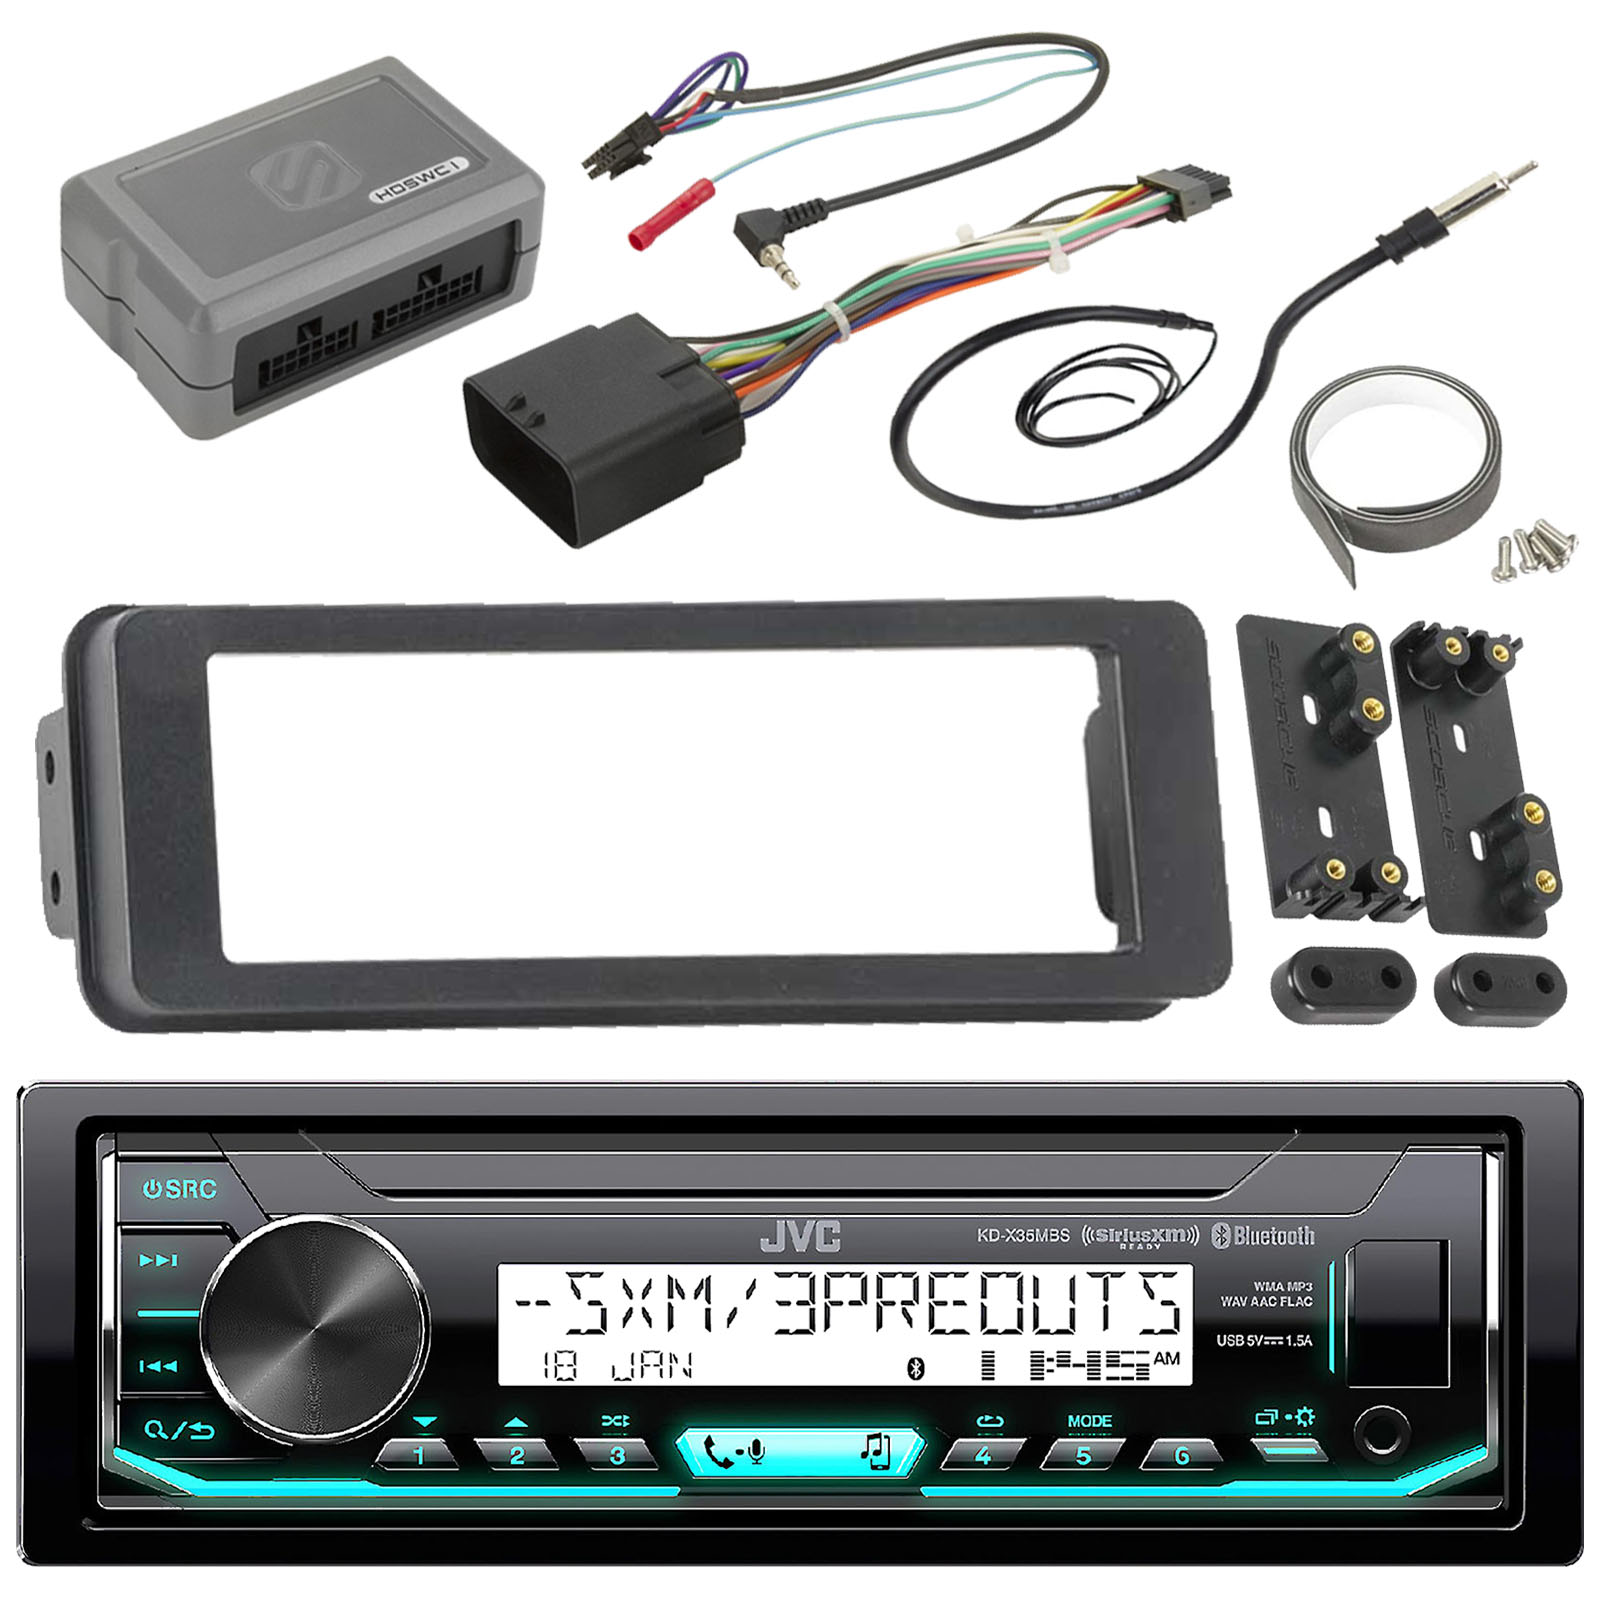 JVC KDX35MBS Marine Radio Stereo Receiver For 1998 2013 Harley Davidson Touring Flht Flhx Flhtc Bundle With Scosche Adapter Dash Kit With Handle Bar Control Module + Enrock Wire Antenna